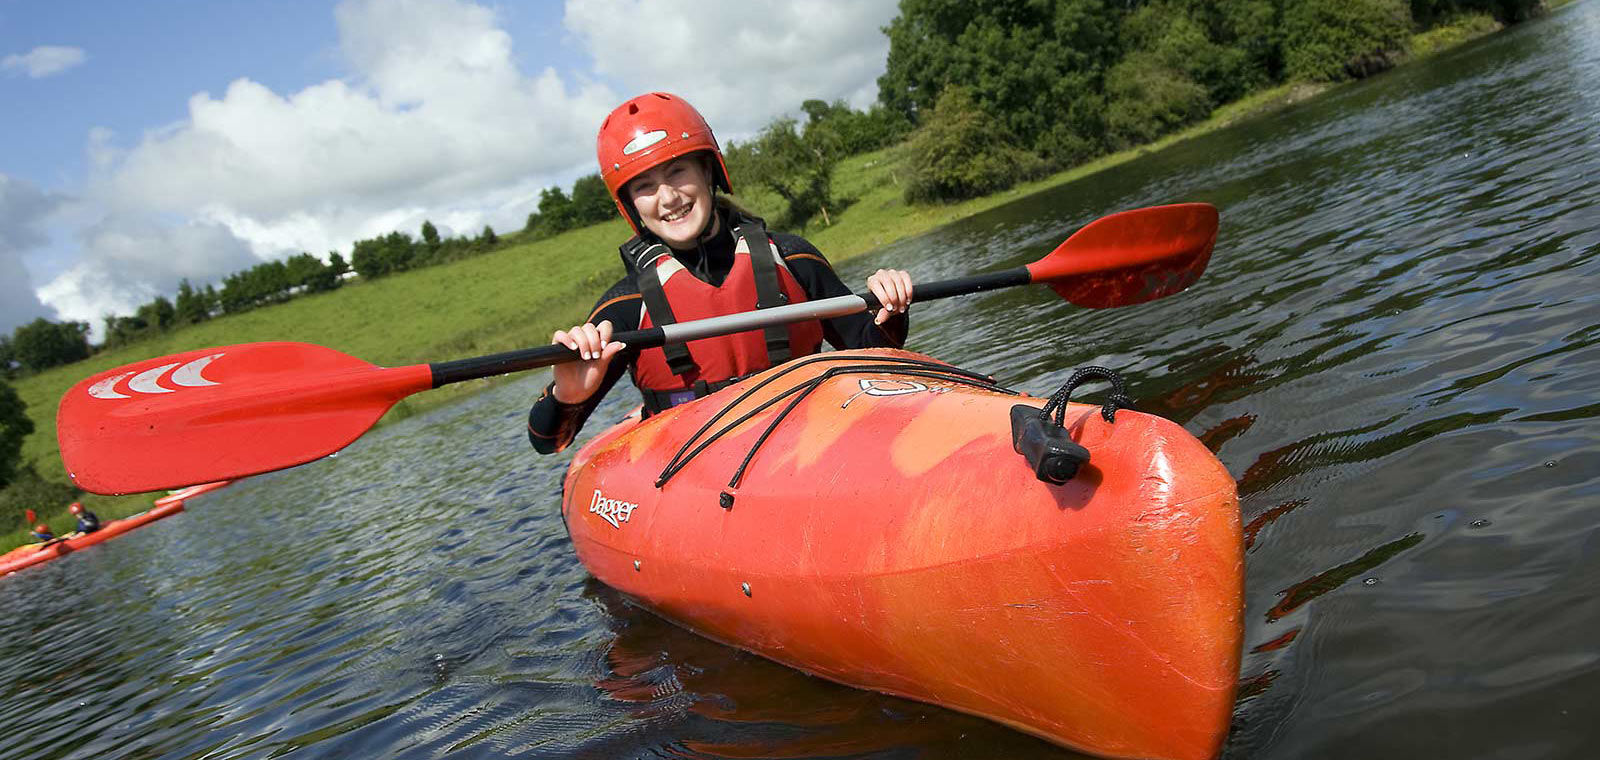 Kayaking in Athlone, at the heart of it